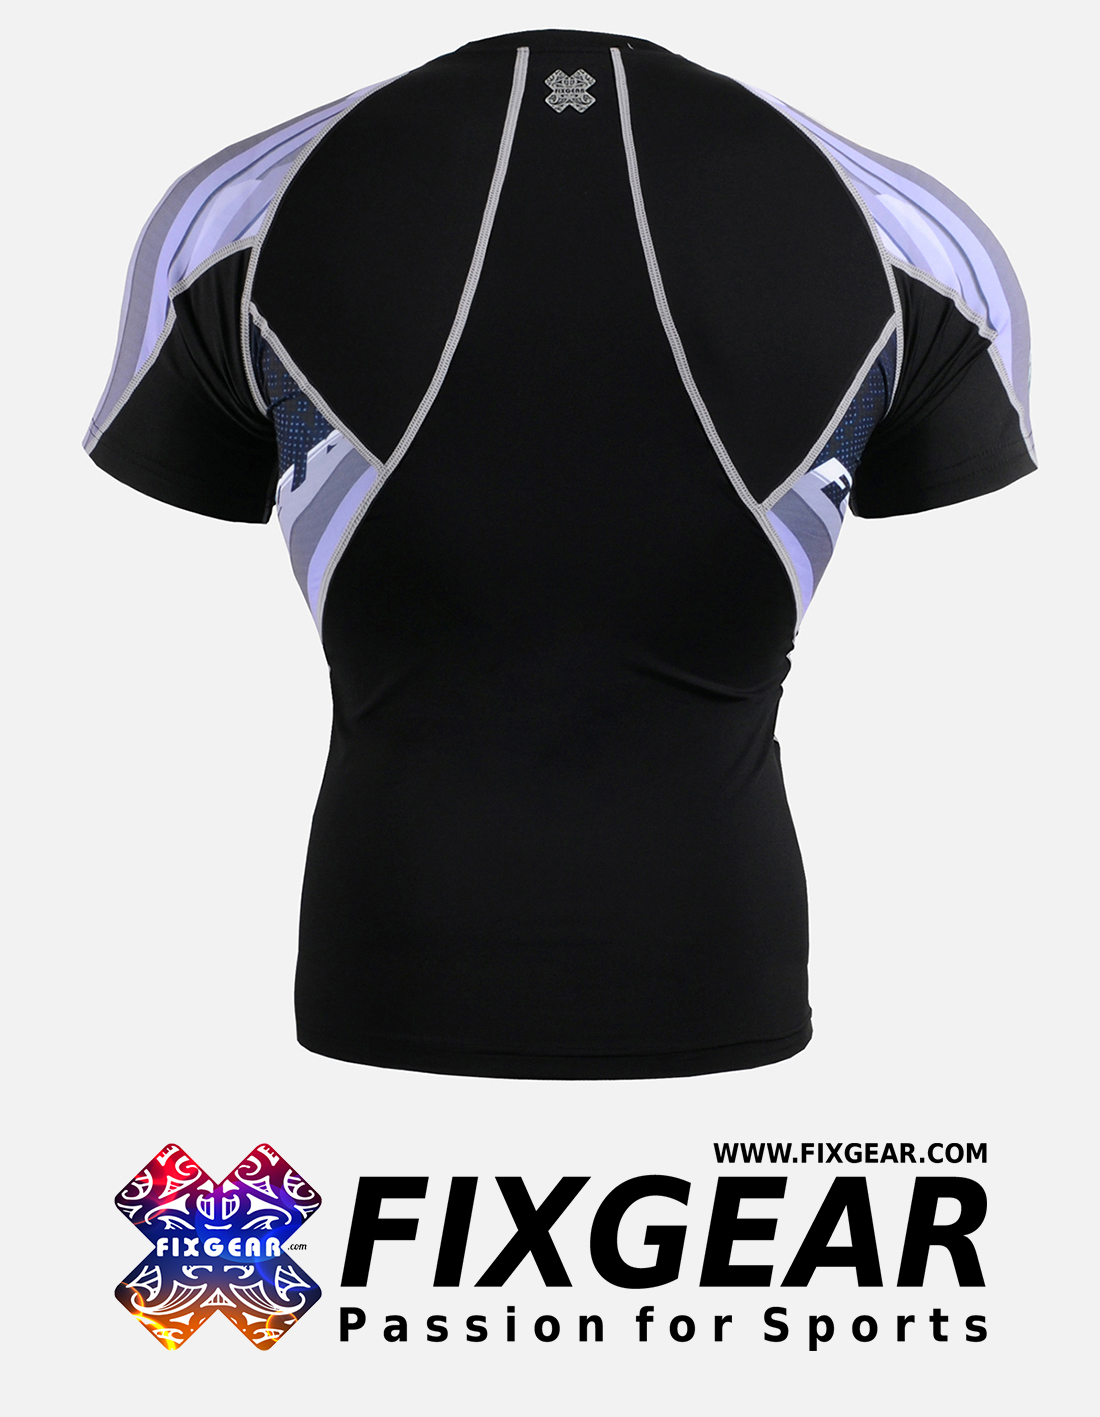 FIXGEAR C2S-B48 Compression Base Layer Shirt Short Sleeve